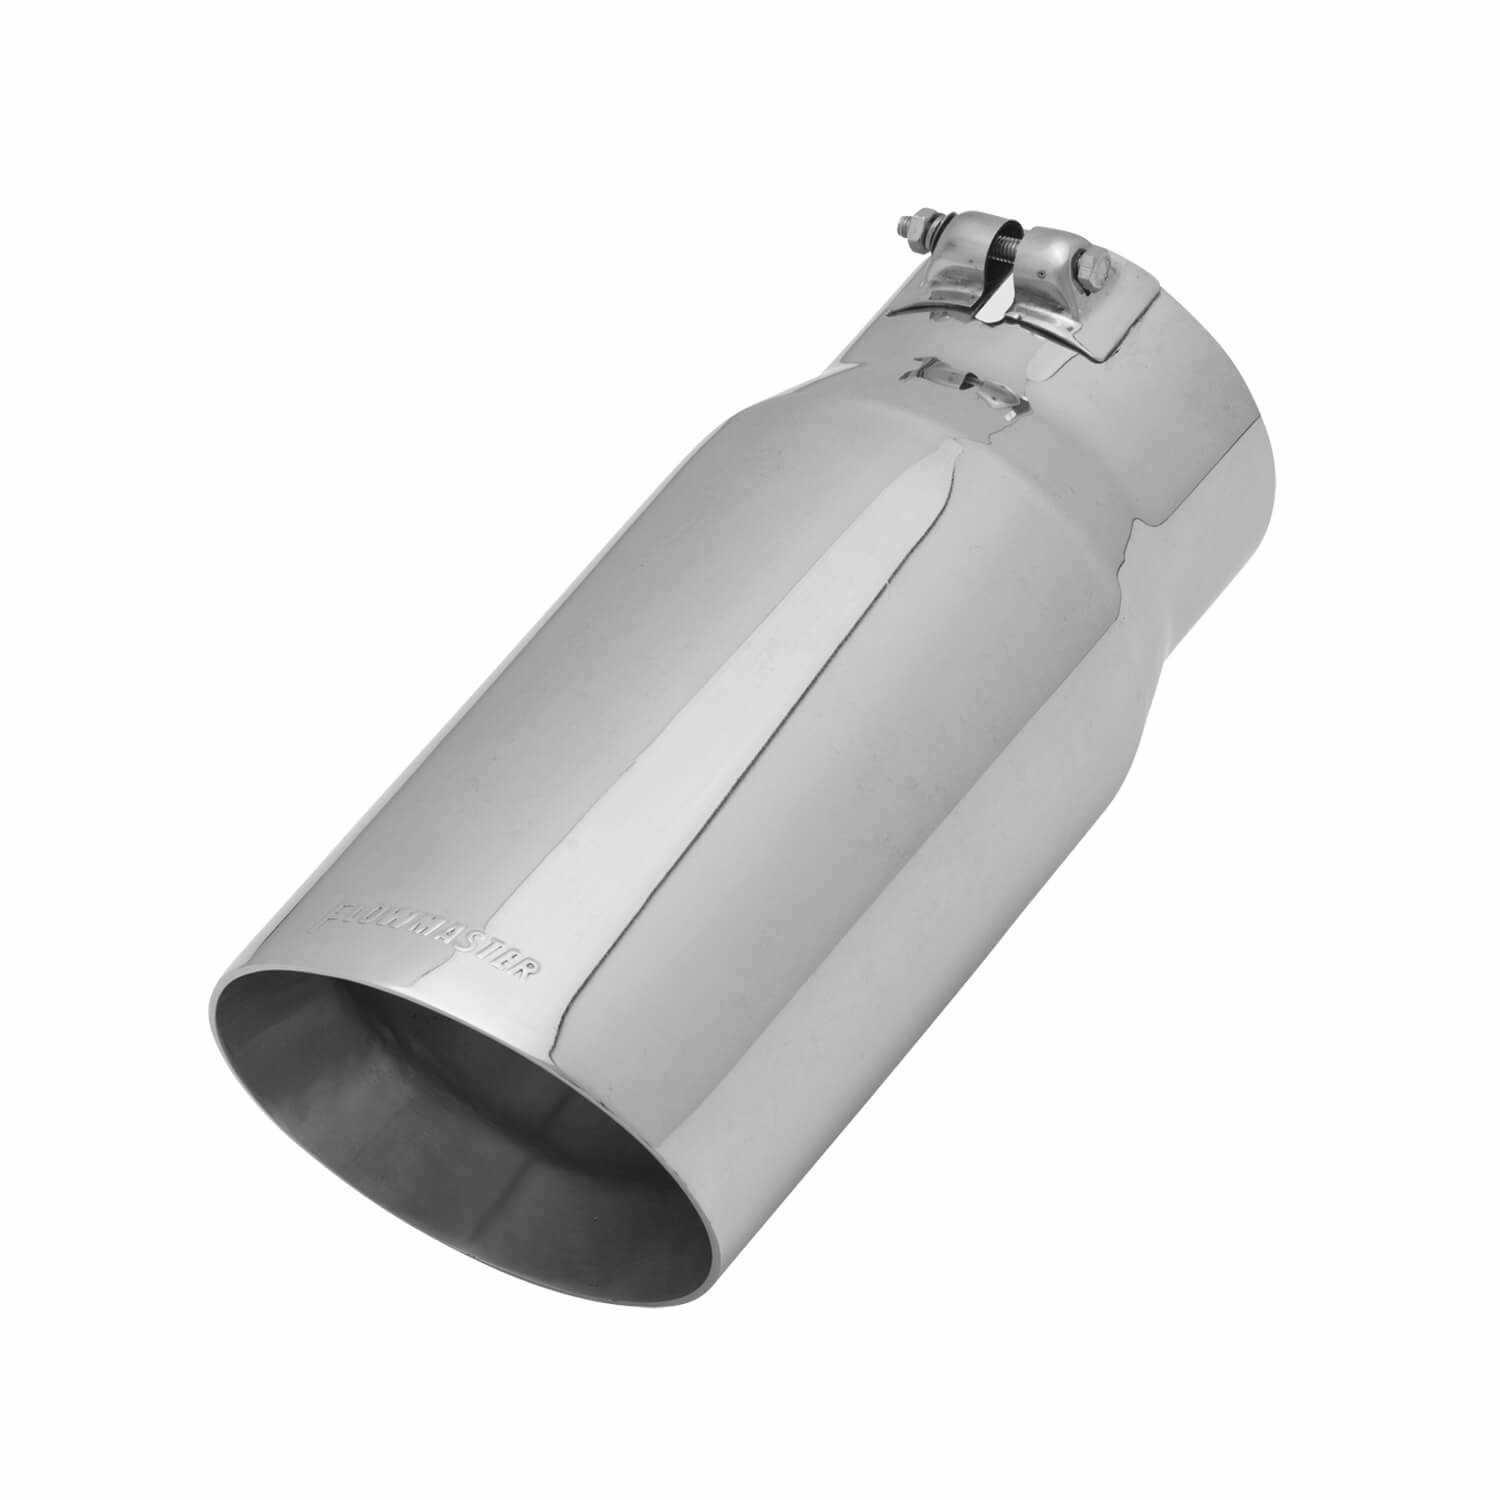 Flowmaster Stainless Steel Exhaust Tip 15376